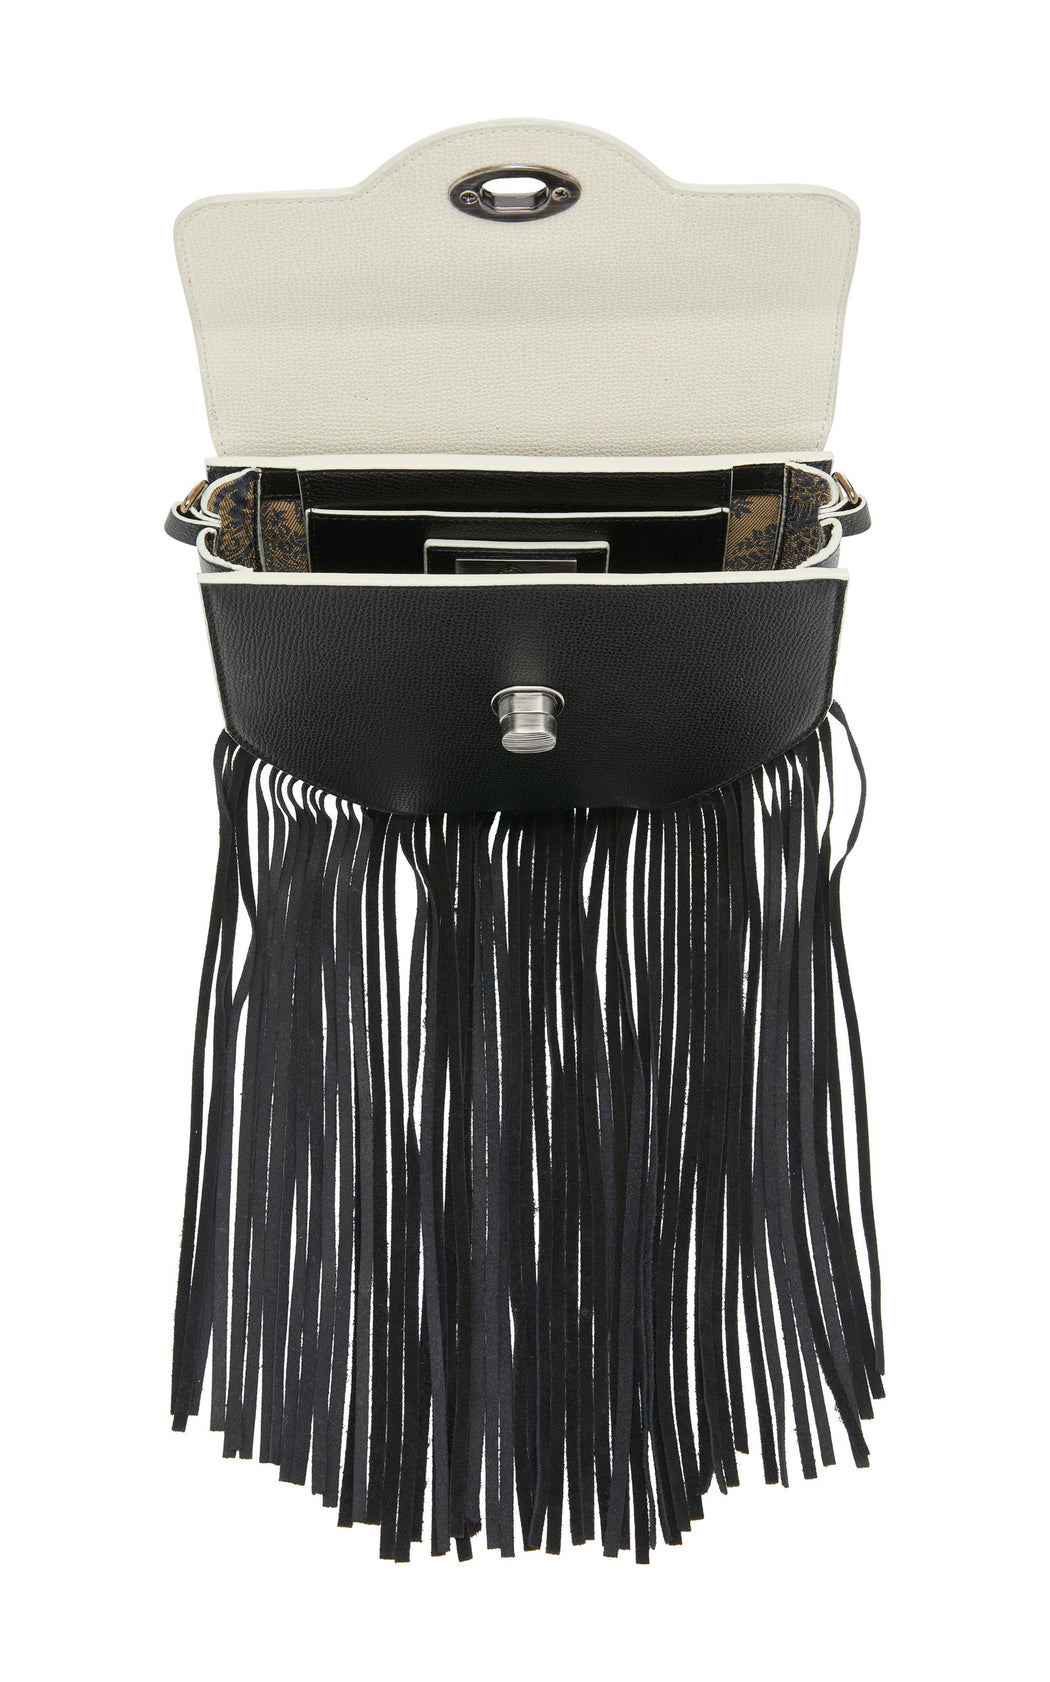 "The ultimate ""IT"" bag for convenience. The Hippie in black saffiano leather and black suede fringe can be worn as a luxury belt bag, over the shoulder, or as a luxury leather crossbody. This fun little bag works for every situation--from running errands to music festivals. Roomy interior with fun fringe, contrast edges and nickel turnlock details."